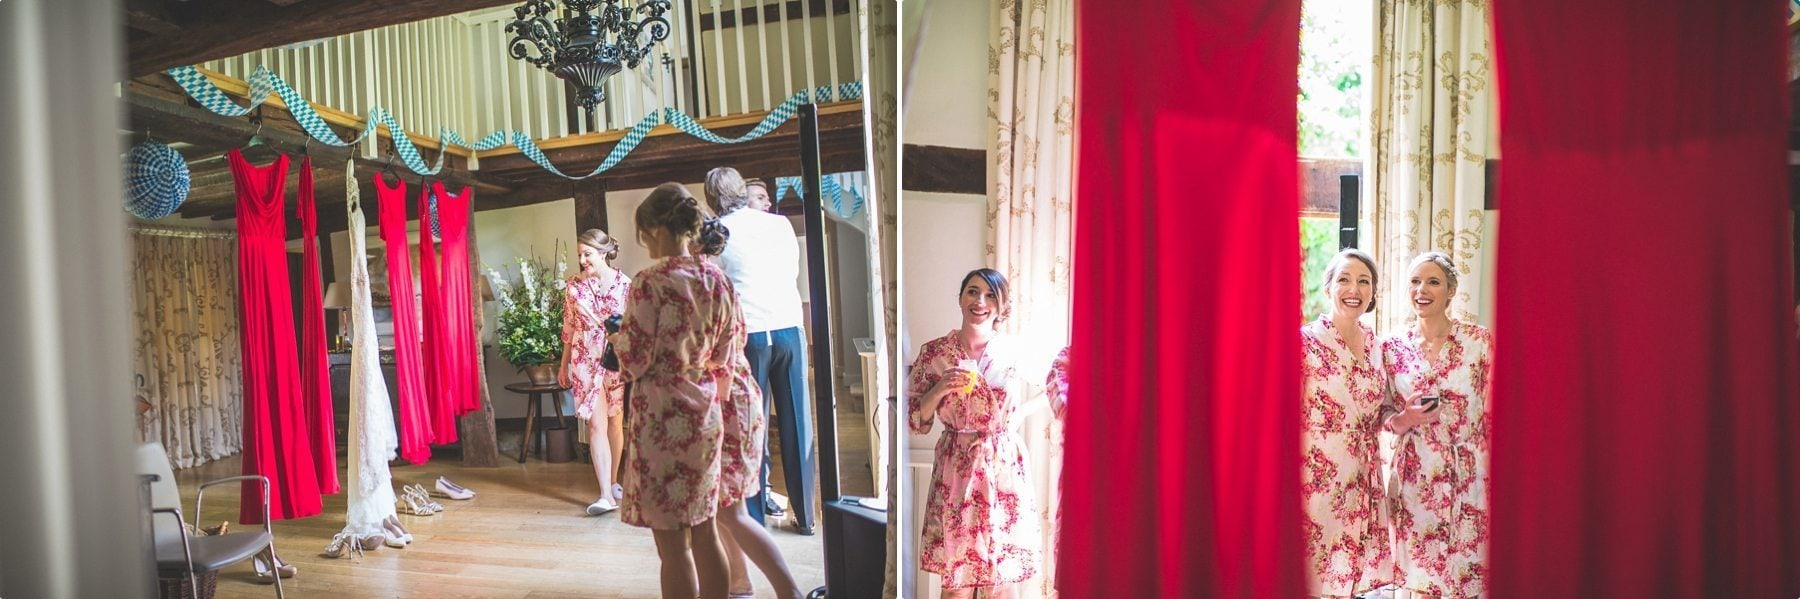 Bridesmaids and bride looking their wedding dresses at the dower house at coworth Park